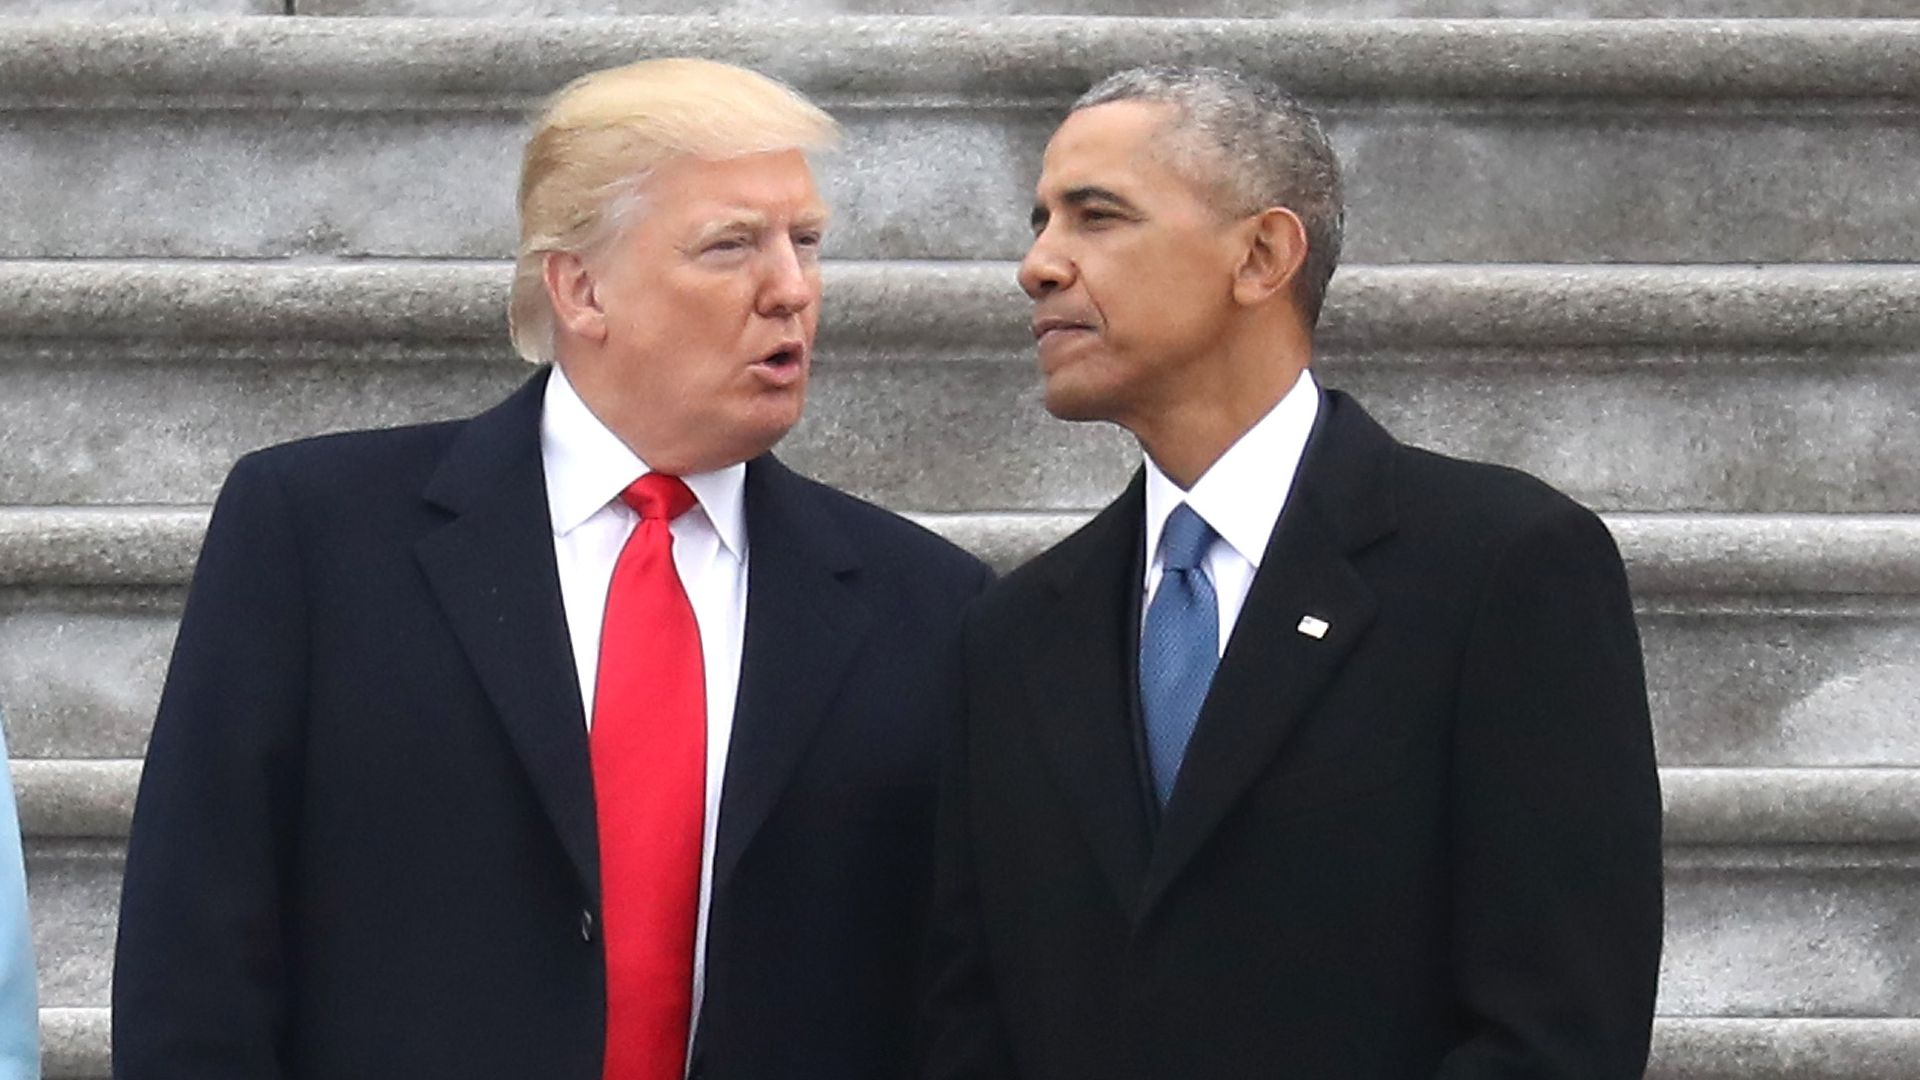 President Donald Trump and former president Barack Obama at the U.S. Capitol on January 20, 2017.